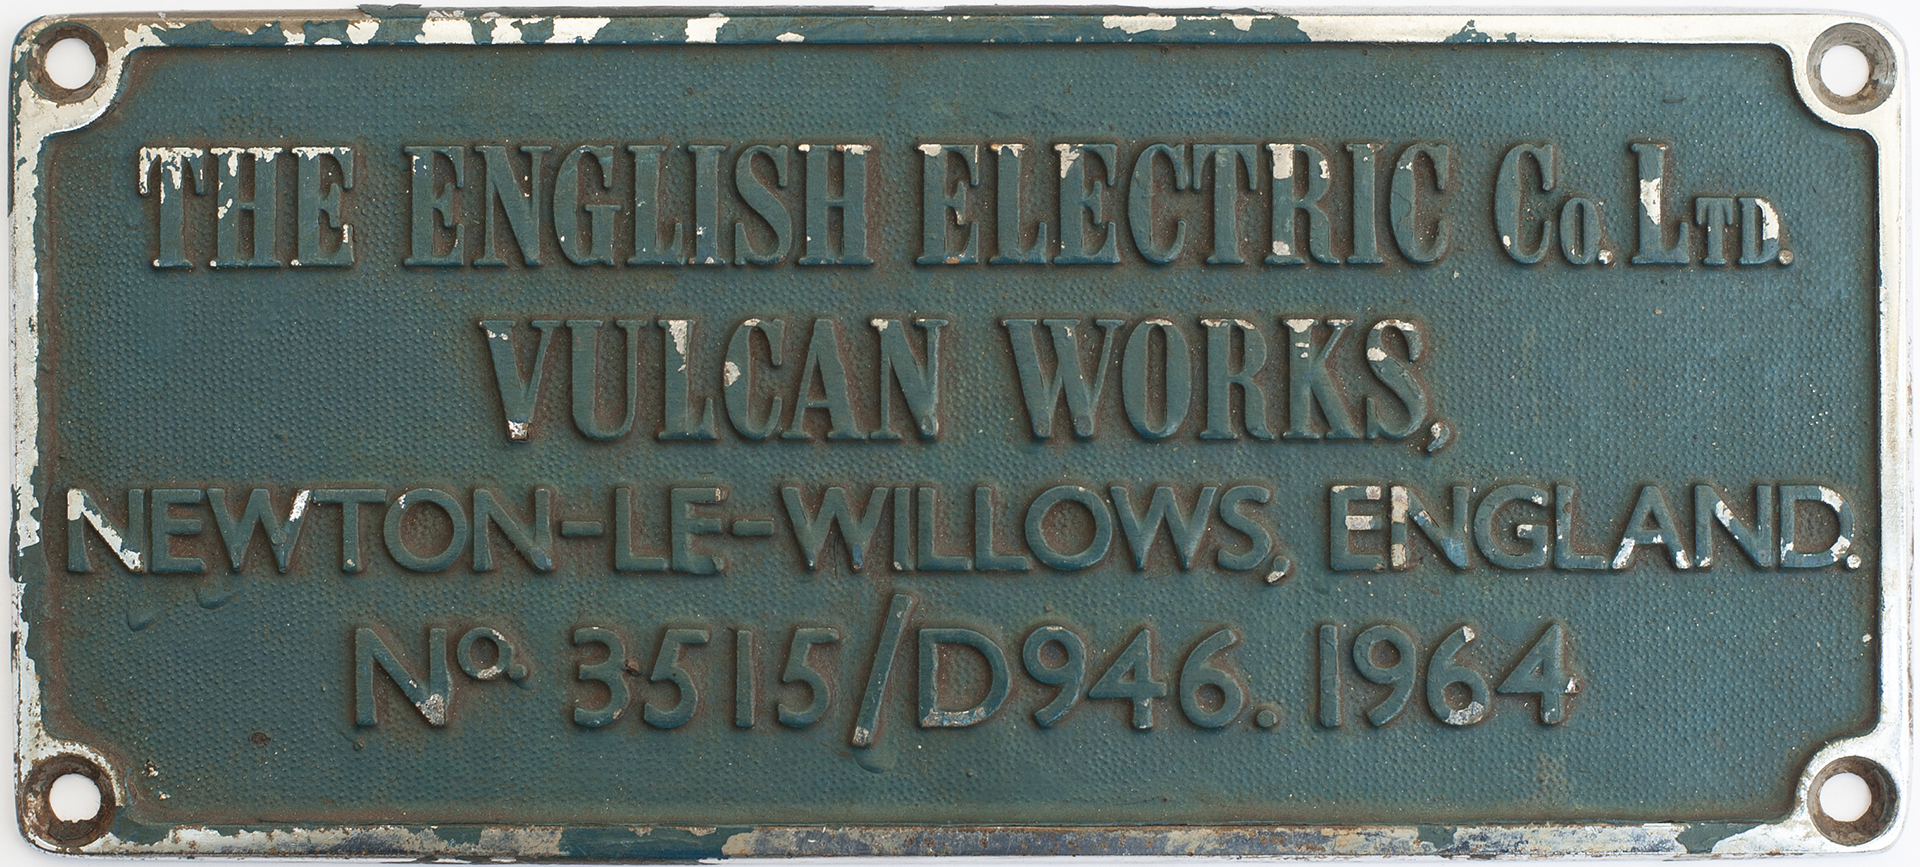 Worksplate THE ENGLISH ELECTRIC CO LTD VULCAN WORKS NEWTON-LE-WILLOWS ENGLAND No 3515/D946 1964 ex